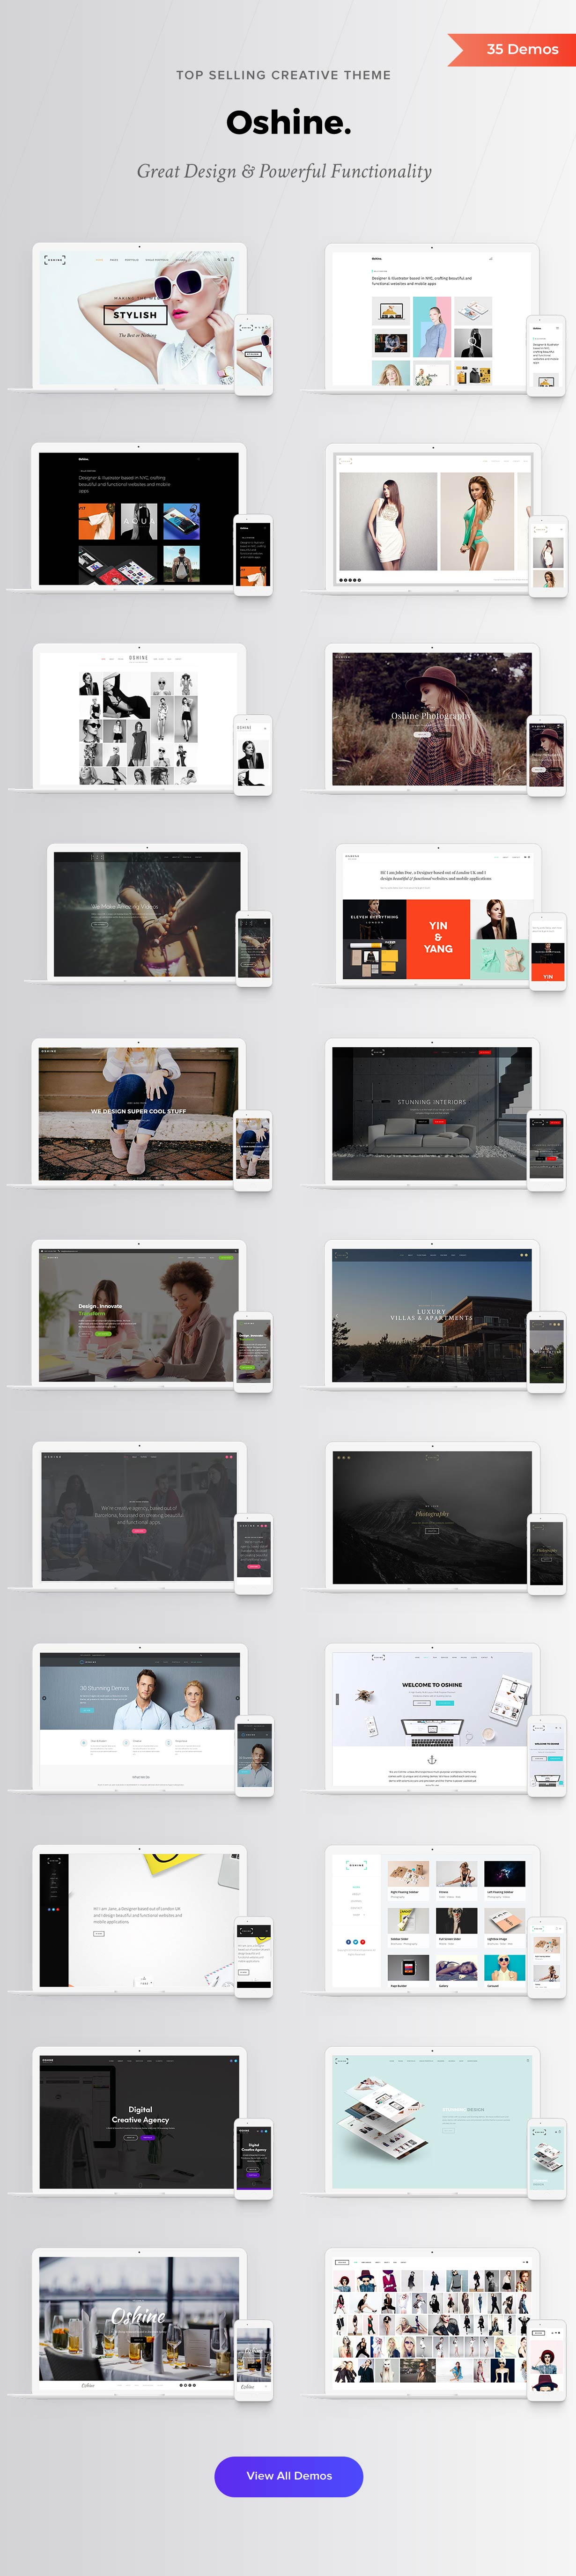 Oshine - 35 Demos Best Creative theme